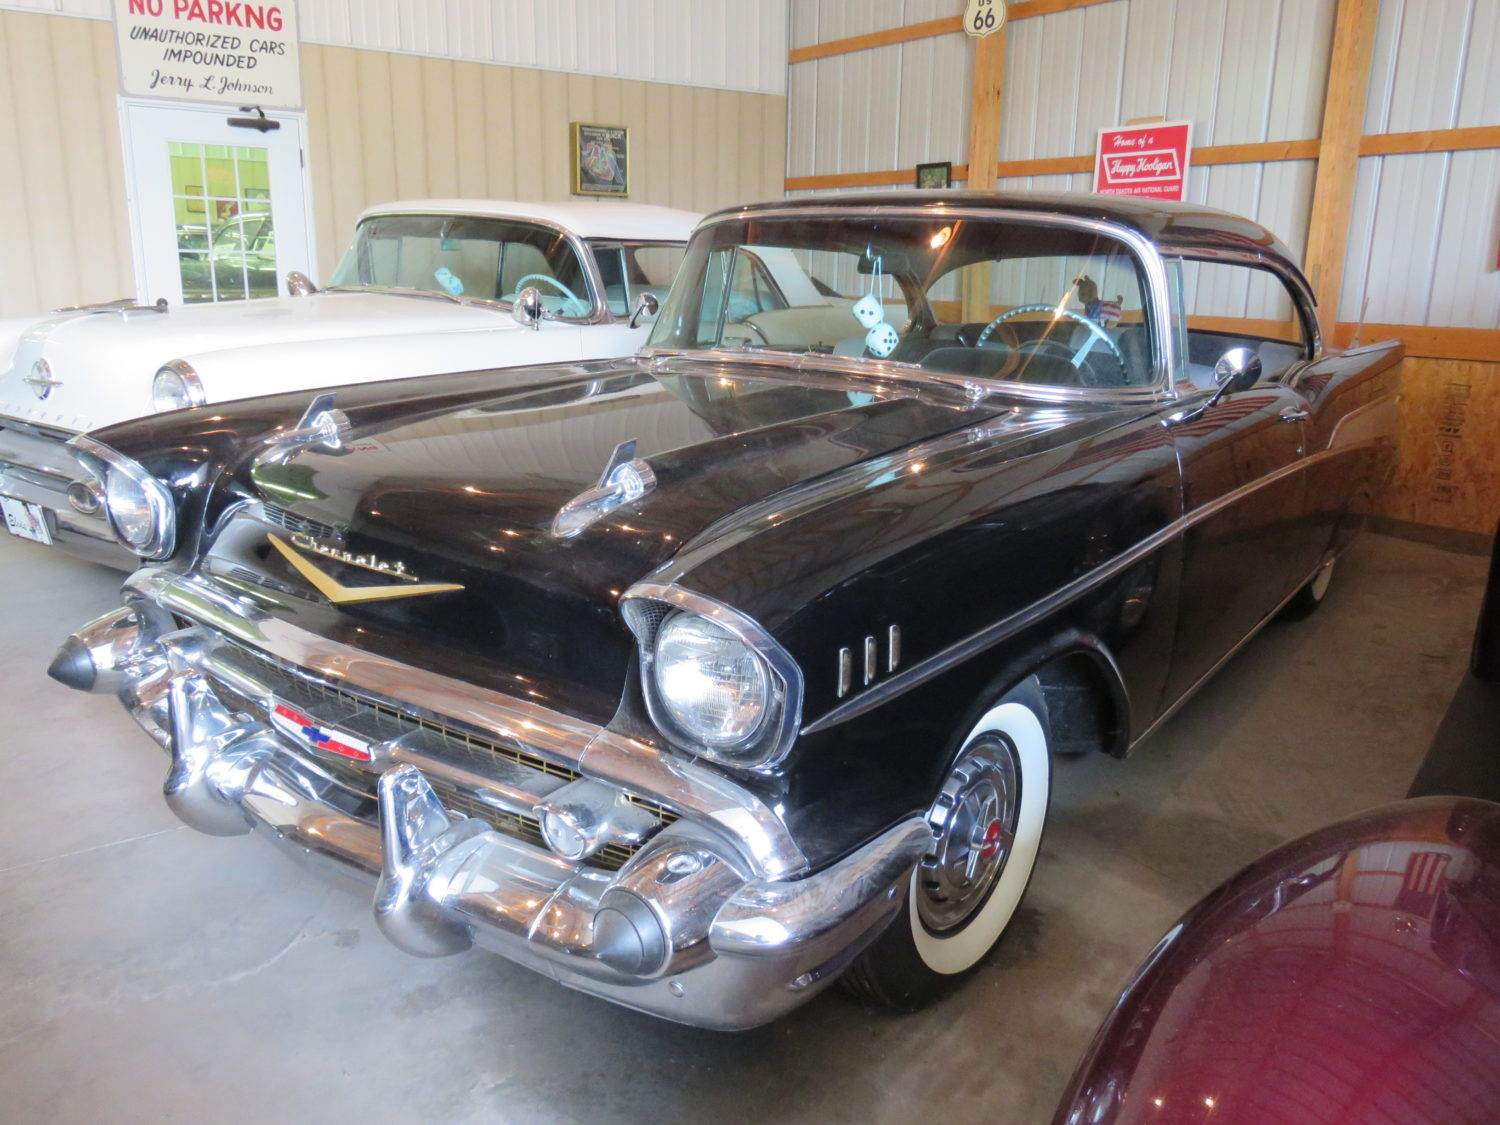 FABULOUS COLLECTOR CARS, MEMORABILIA, & MORE AT AUCTION-JERRY JOHNSON ESTATE! - image 8